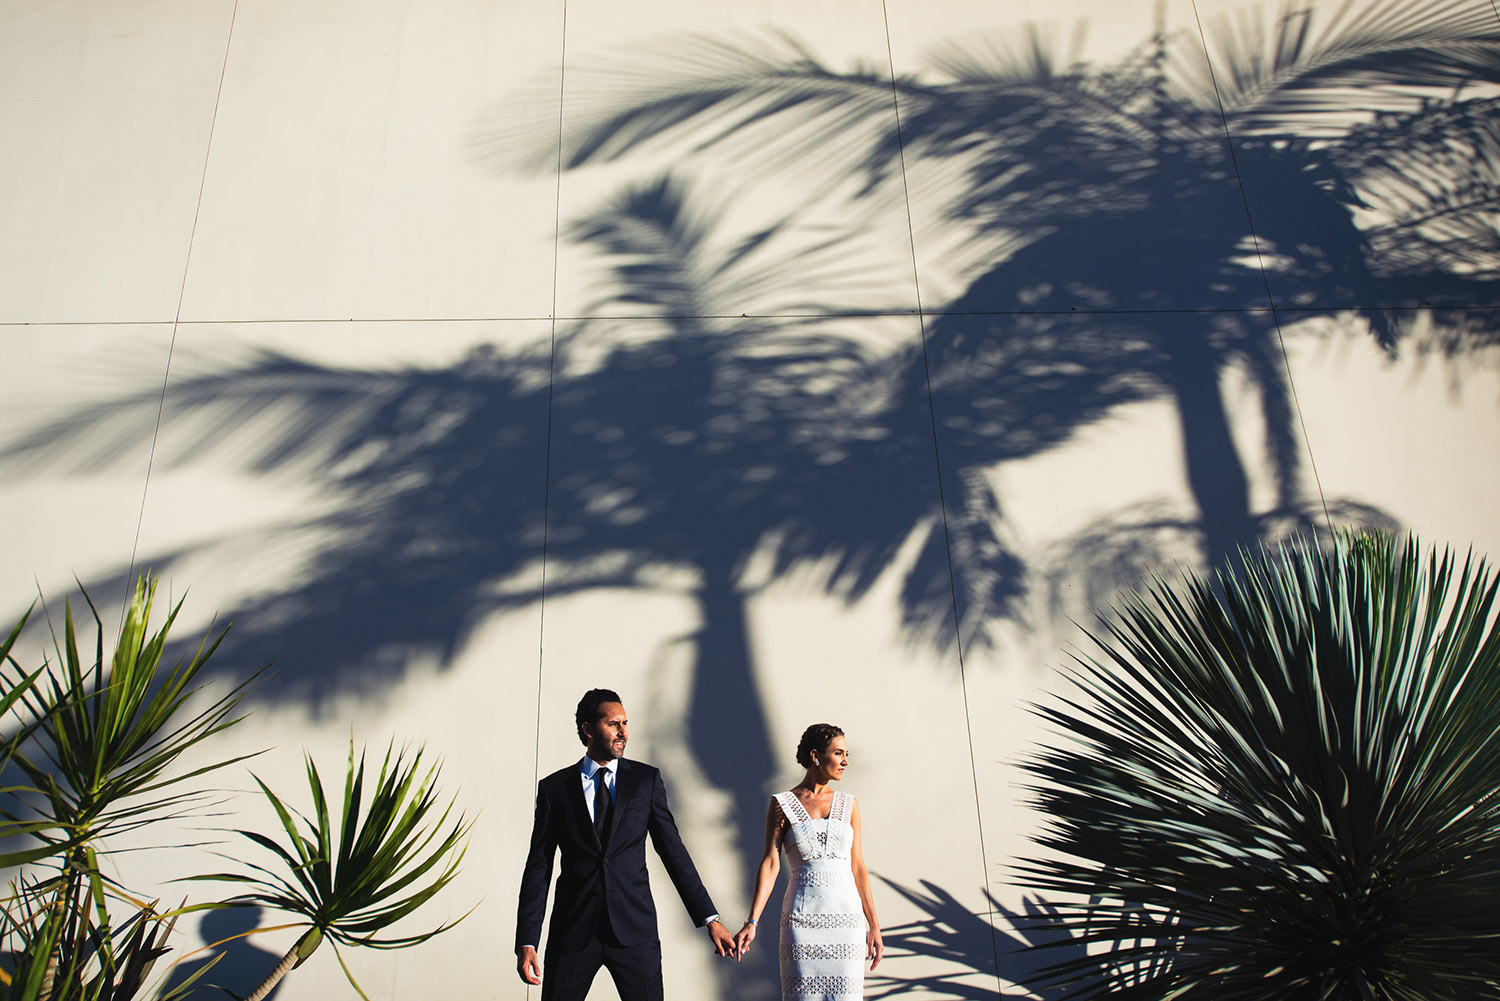 Amazing Hinoki & the Bird wedding photo with palm trees